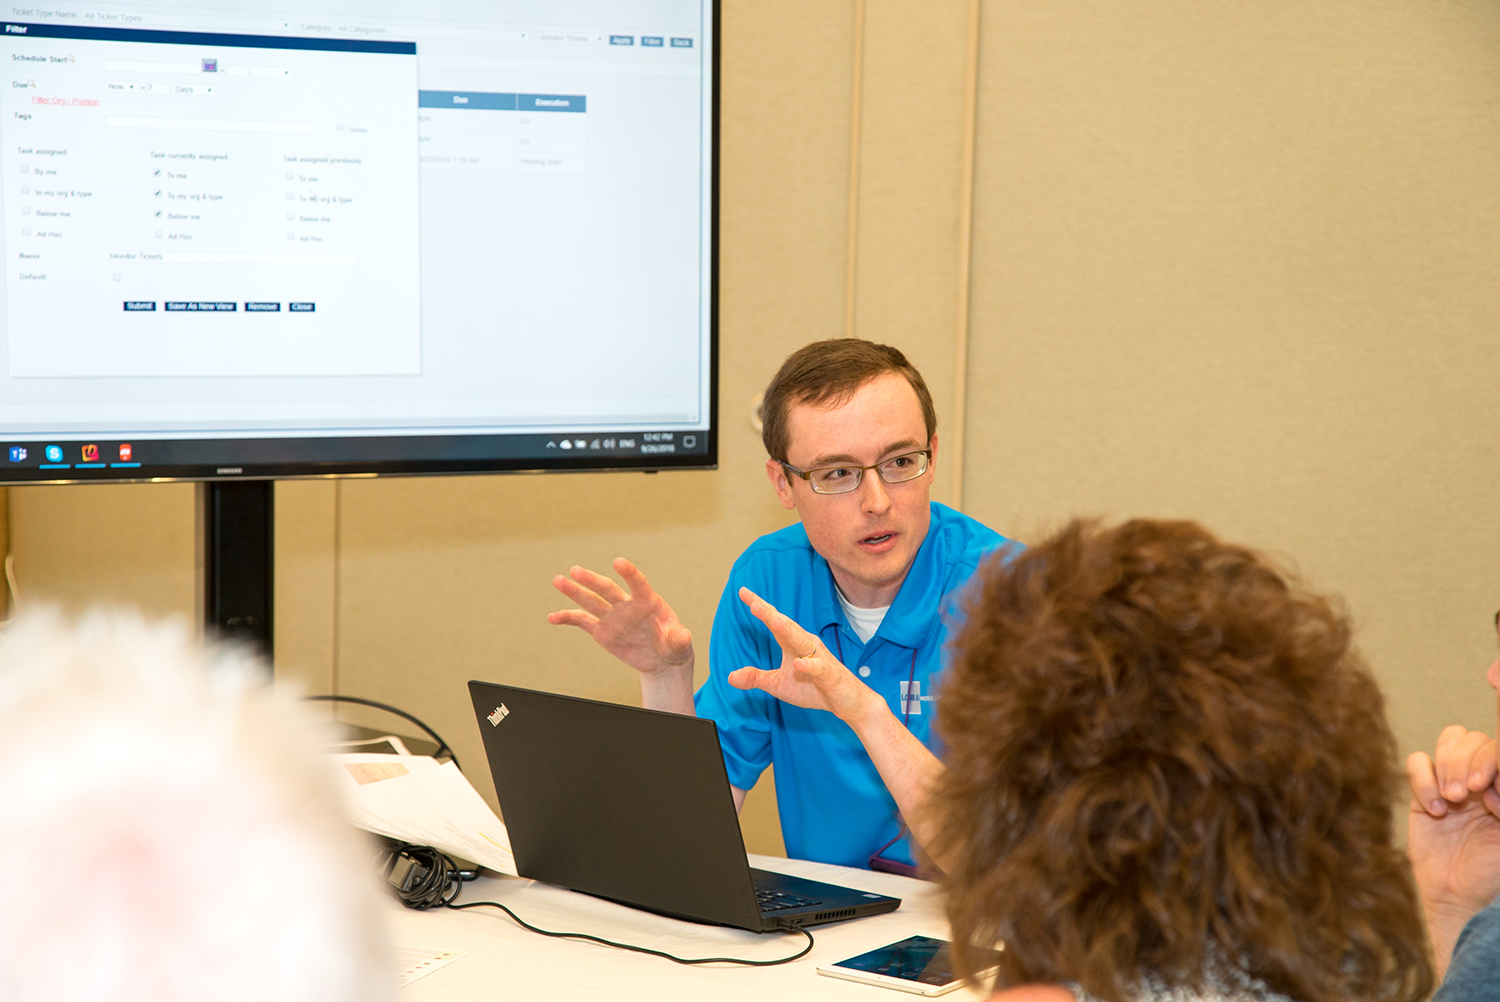 Nathaniel Sheetz of Logile conducts a demo during breakout